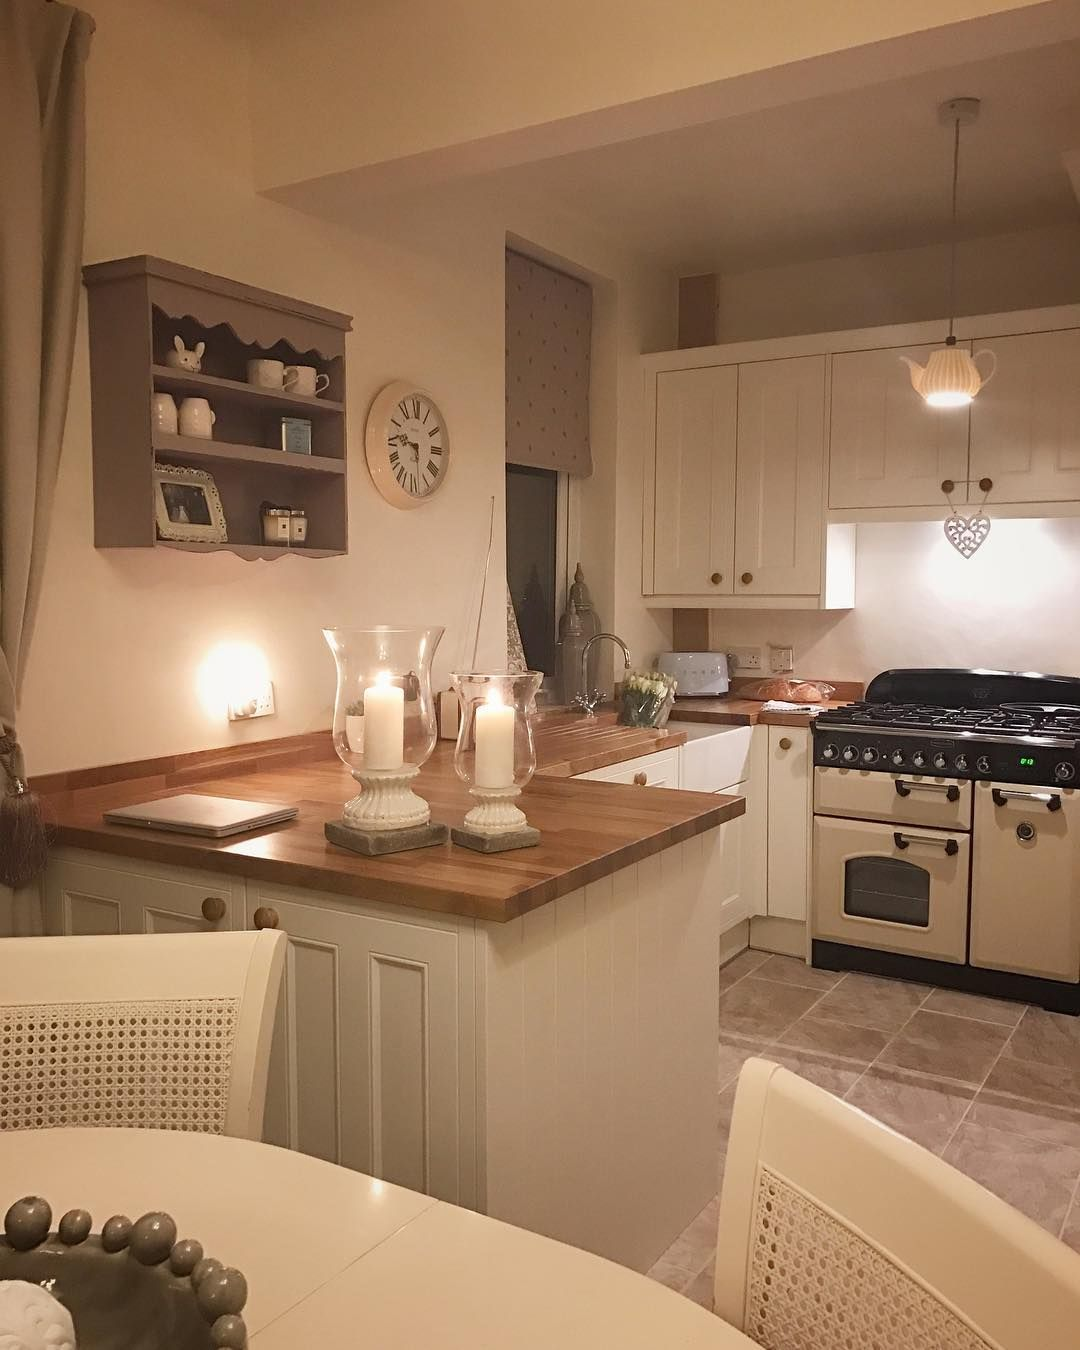 Pin by Laurent Forton on Decoration  Cosy kitchen, Kitchen